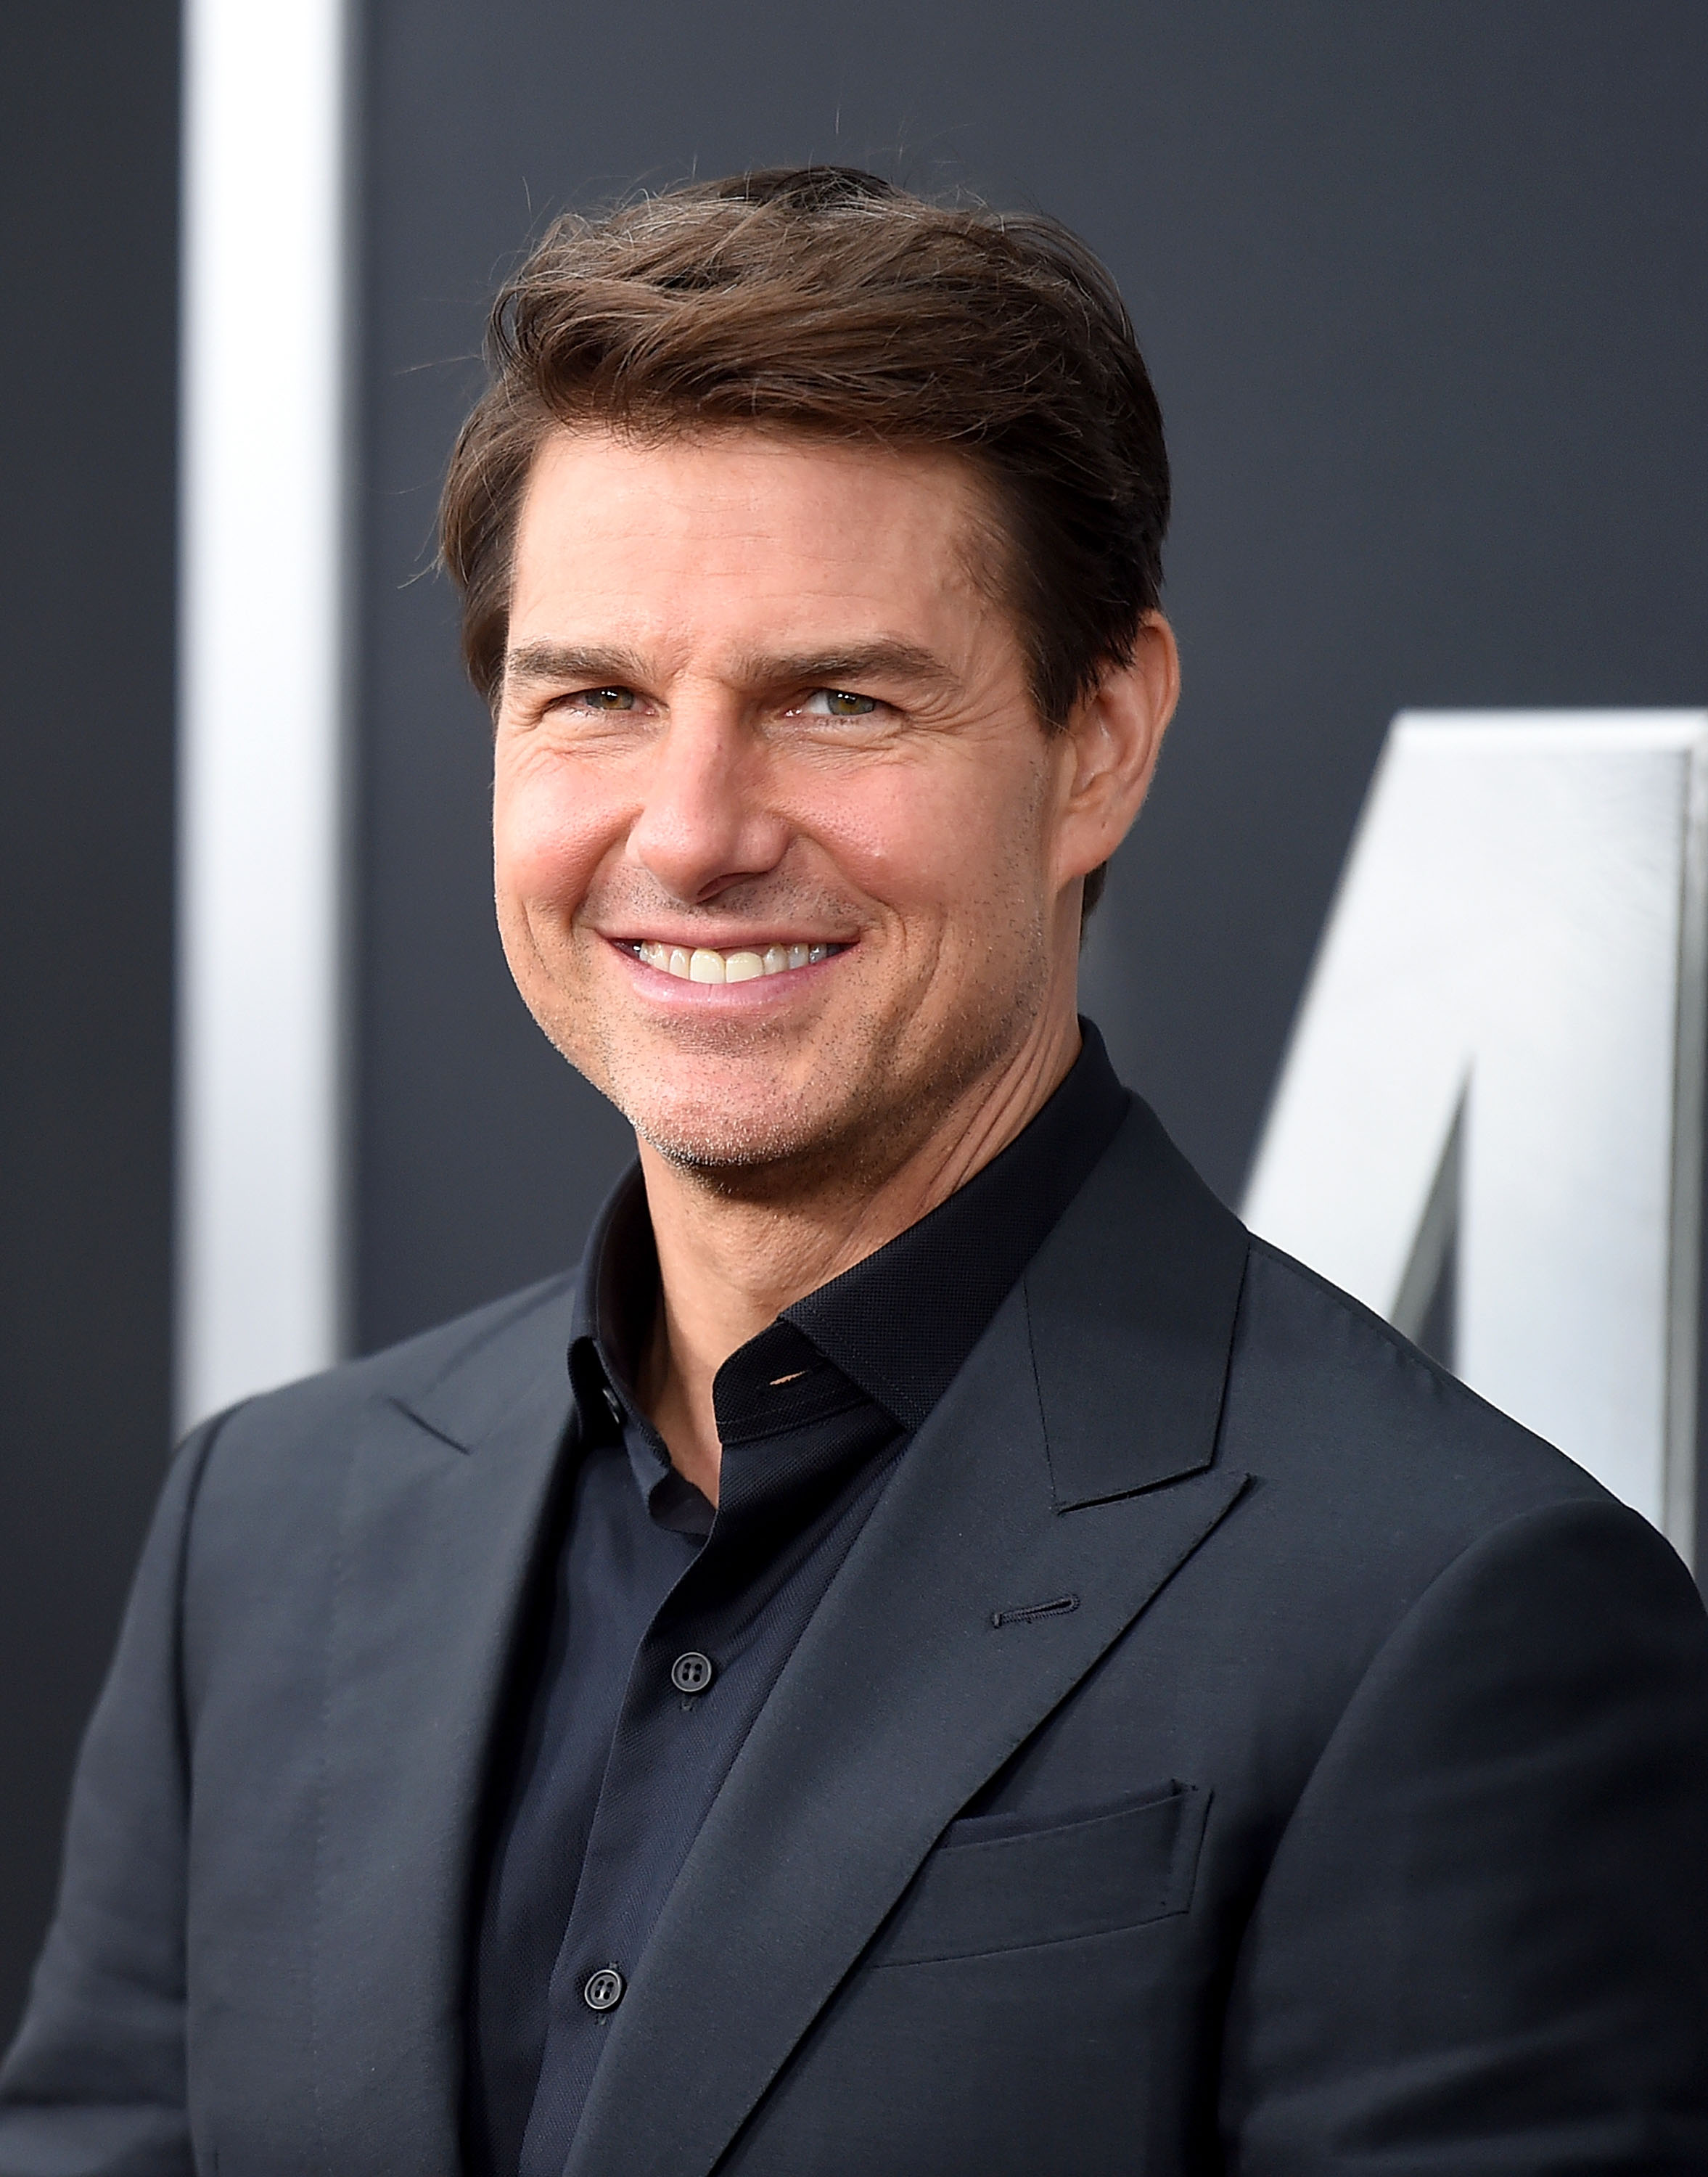 Judd claims Tom cruise did not know one could watch porn online  (Photo by Jamie McCarthy/Getty Images)